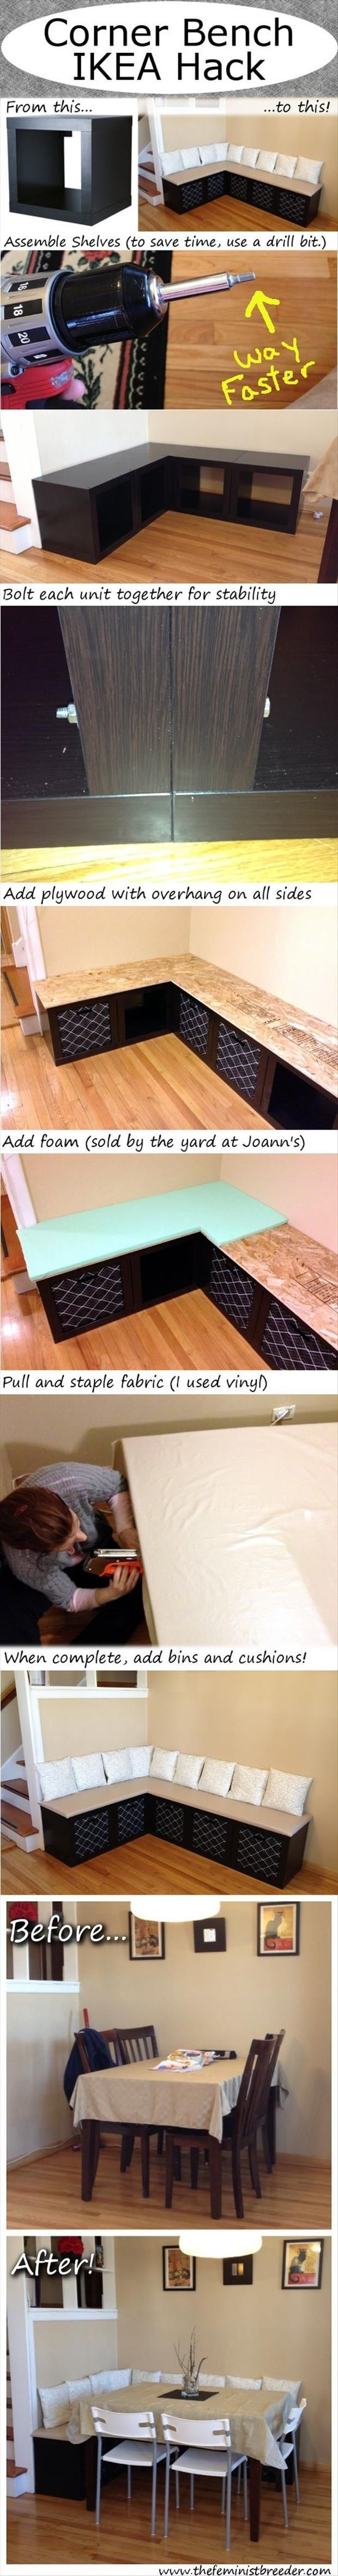 Loft bed with slide screws  Adrienne Leigh adrienne on Pinterest